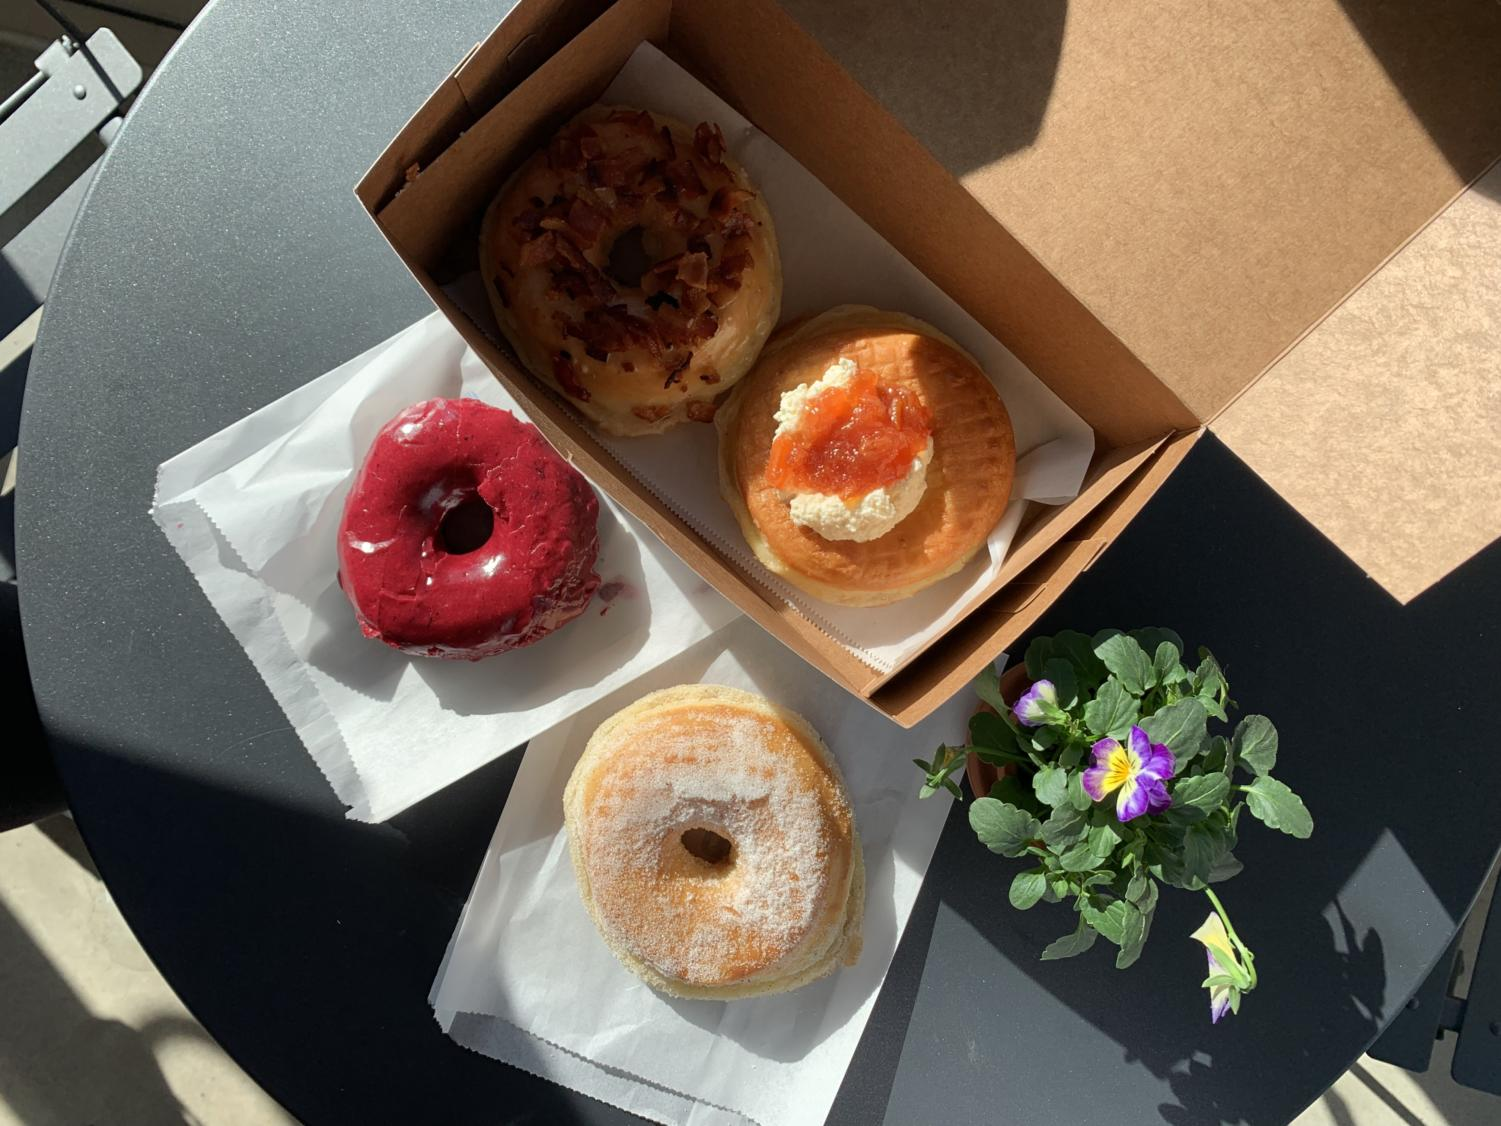 Oliboli offers a range of flavors atypical of most doughnut stores,  such as (going clockwise) Bumbleberry, Burnt Butter Bourbon Bacon, Fry Bread with Meyer Lemon and Guava Jam and Lavender Sugar.